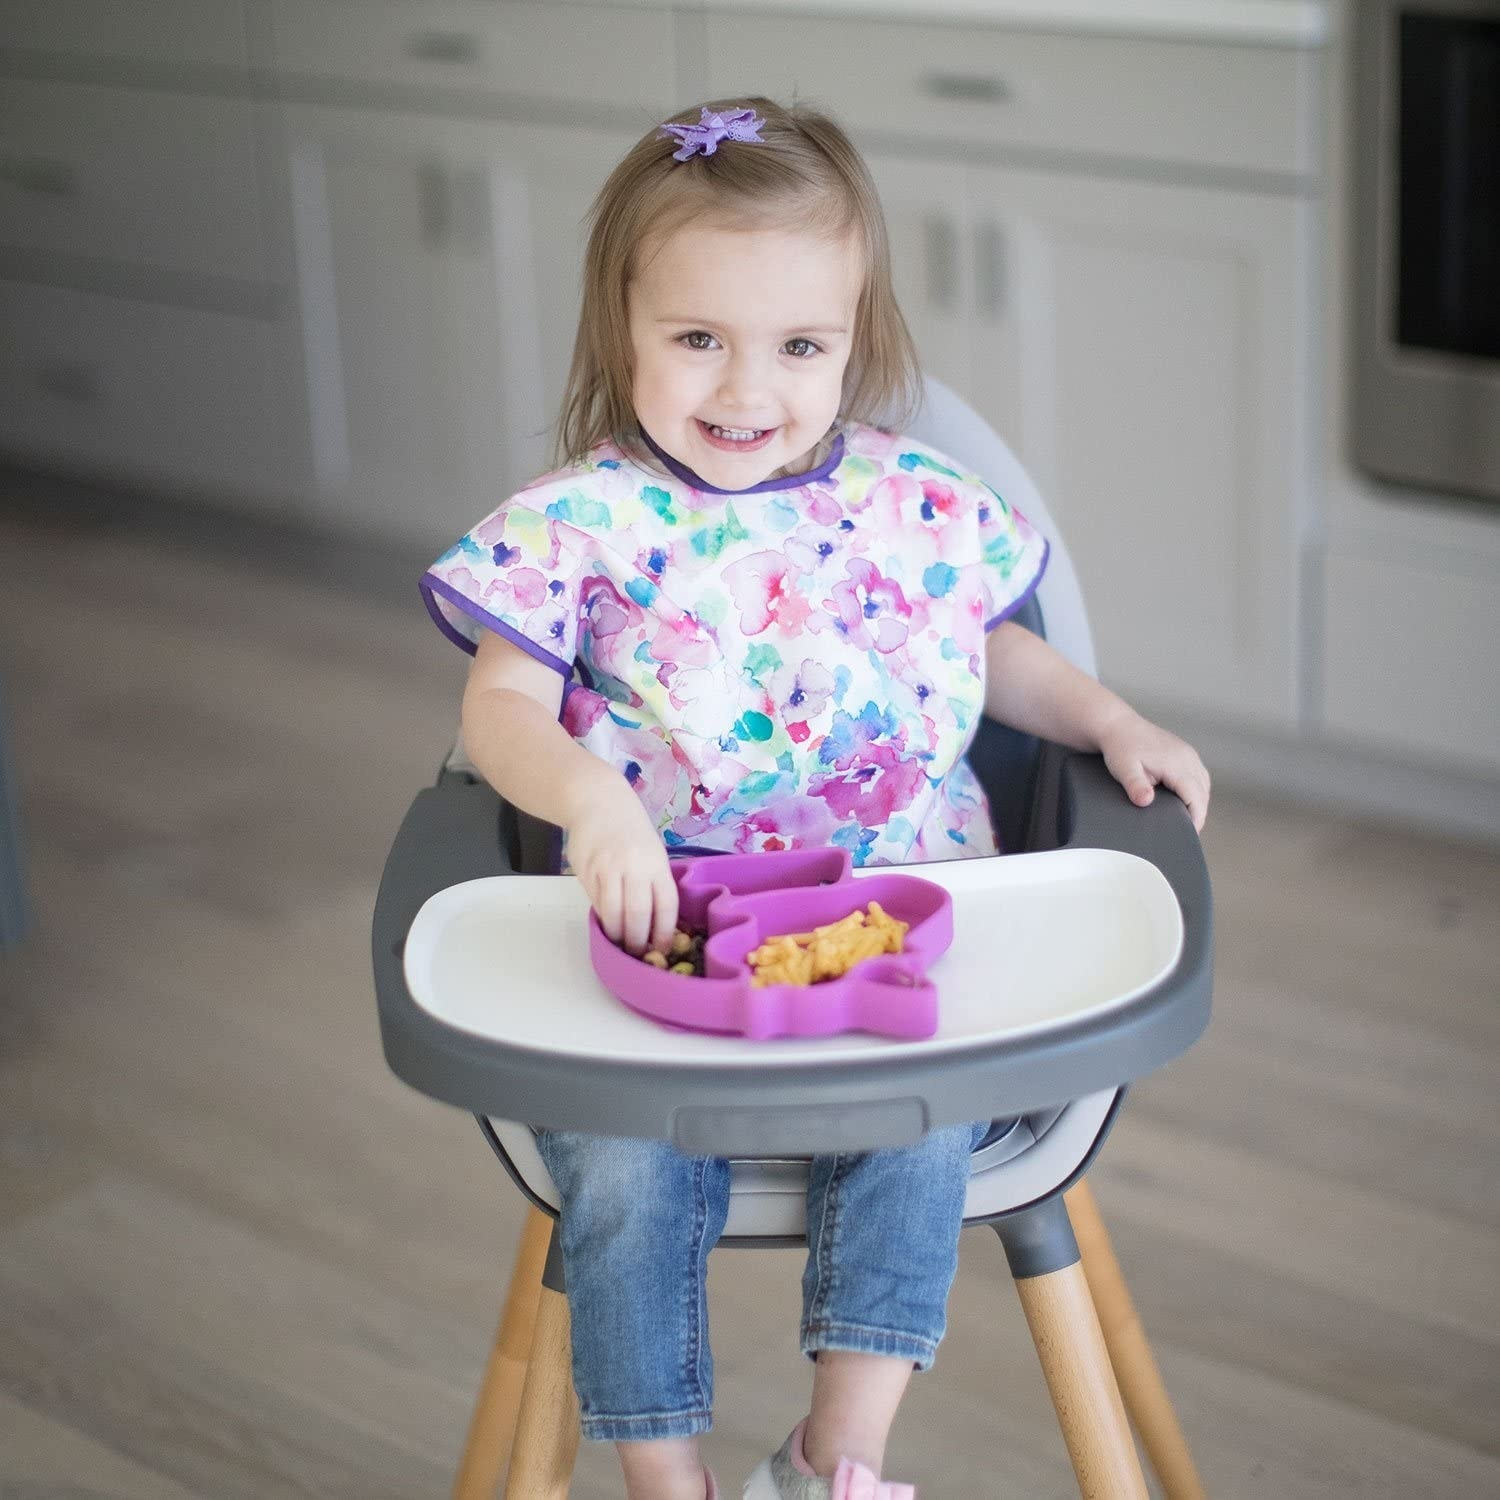 A small child sitting in a highchair eating They're wearing a bib with short sleeves